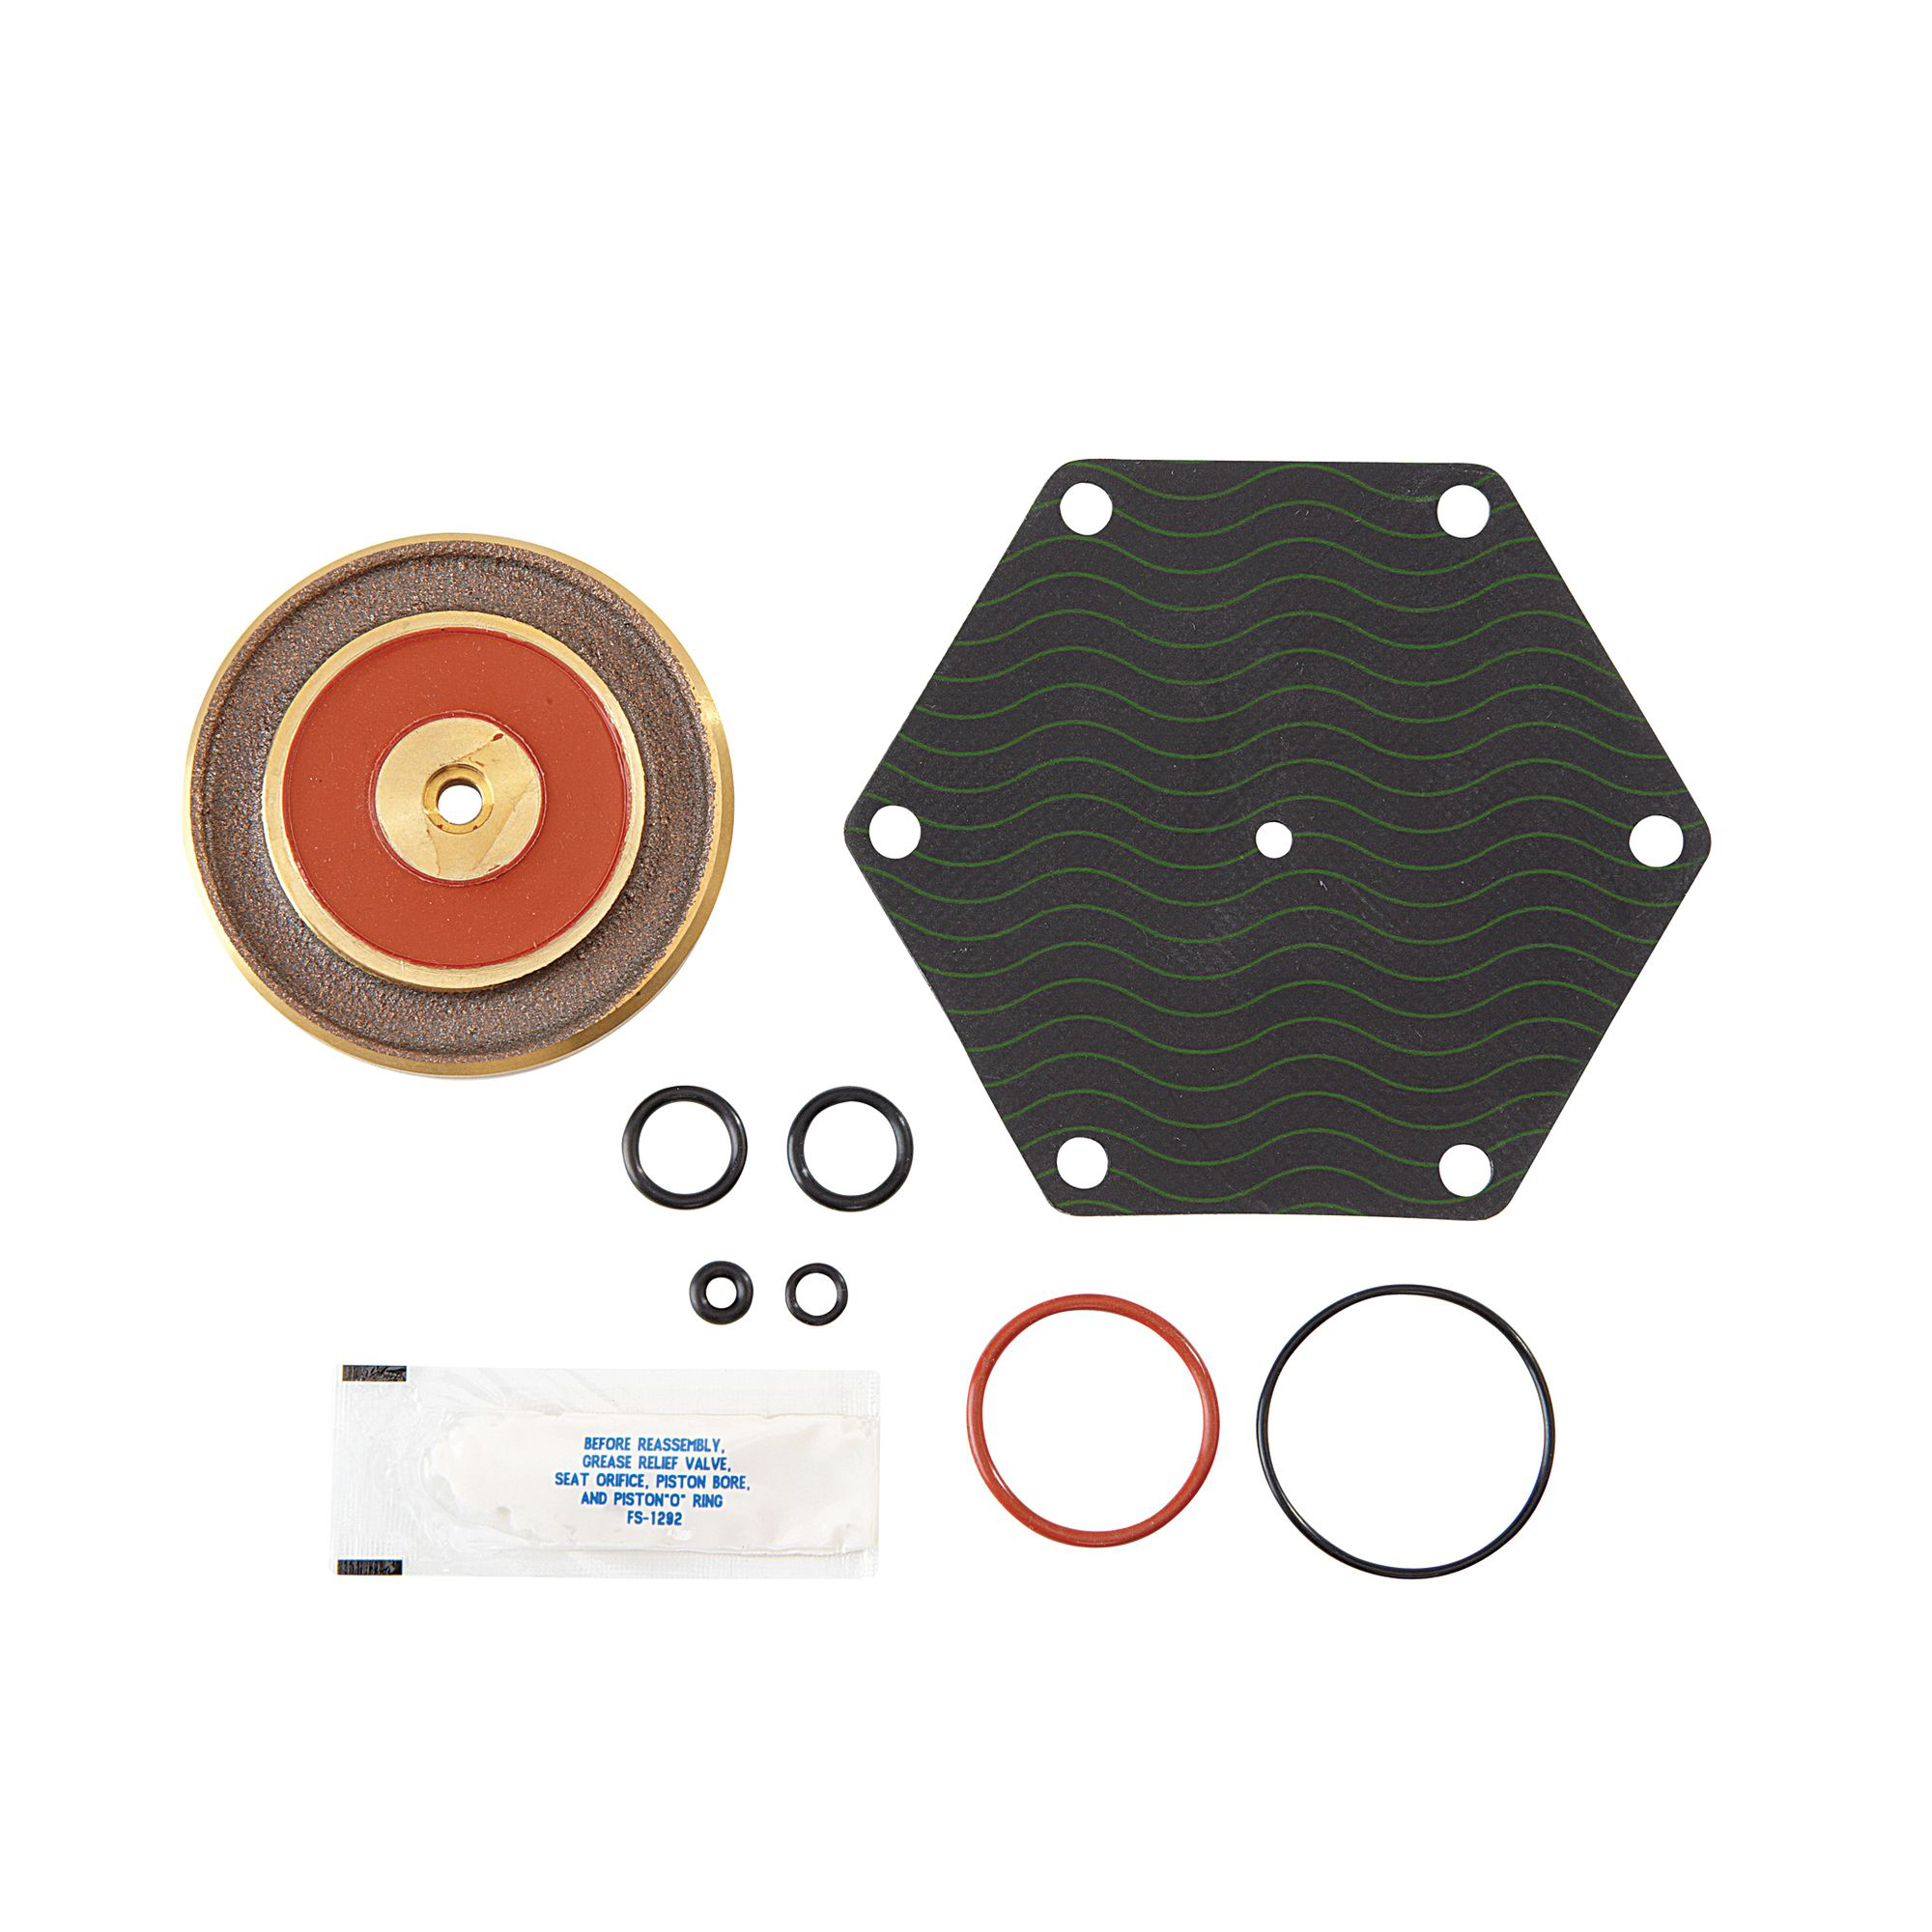 WATTS® 0794062 LFRK 909M1-RV Parts Kit, For Use With: Model 009/LF009 Reduced Pressure Zone Assemblies, Rubber, Domestic